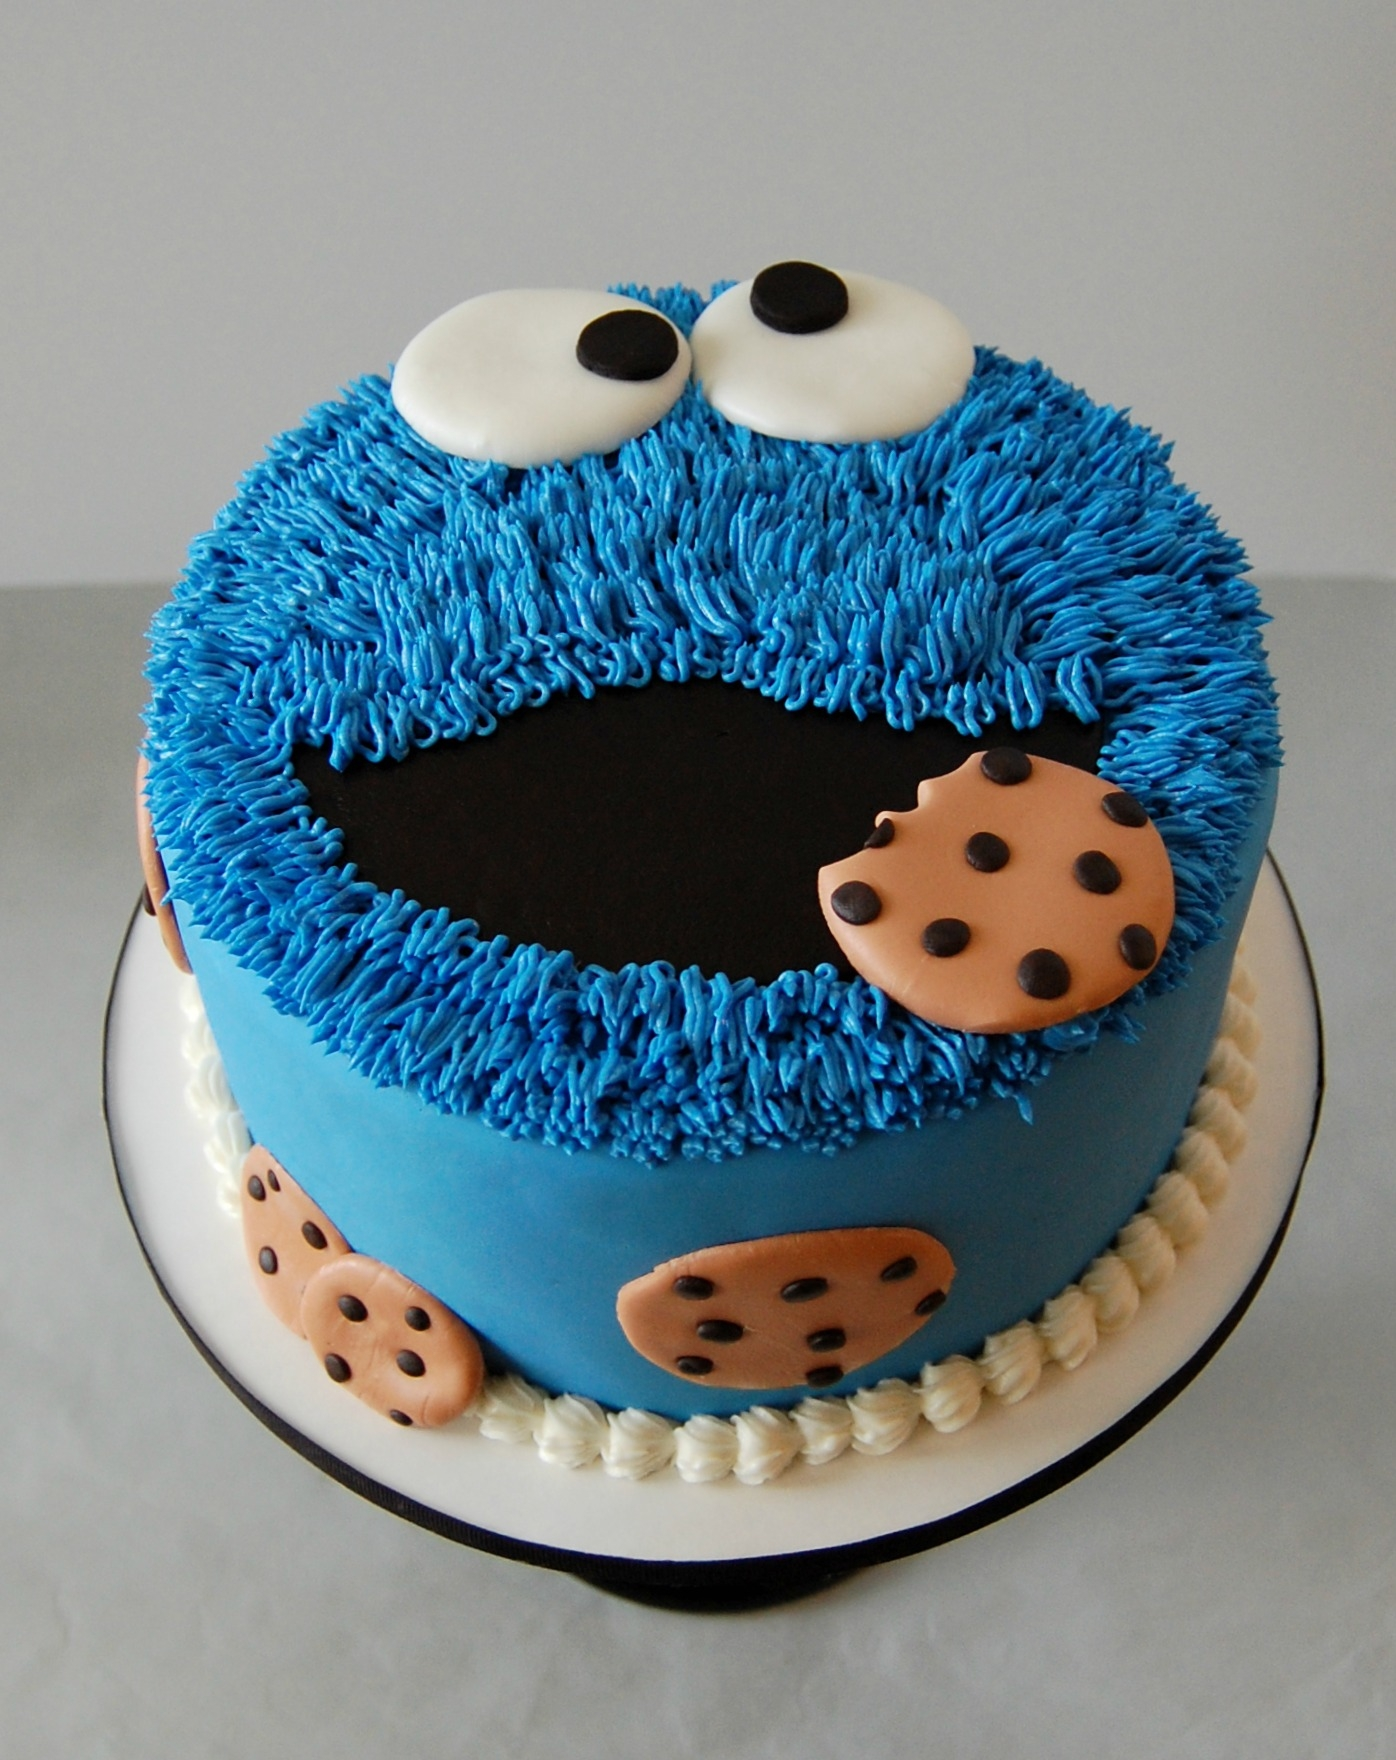 Cookie Monster Cake - CakeCentral.com